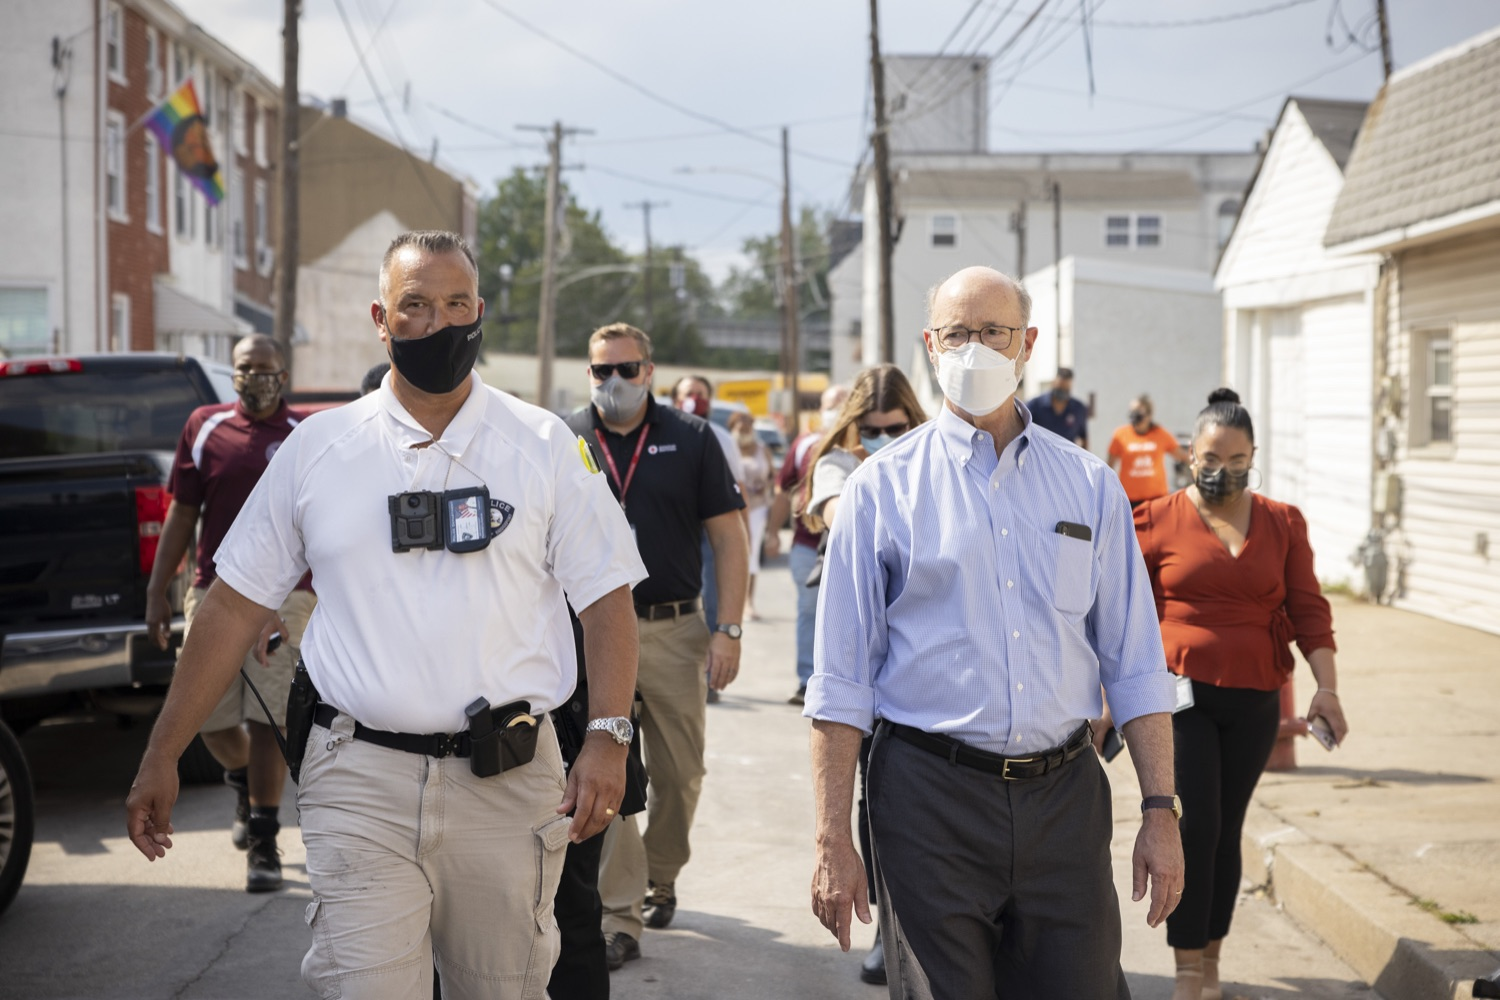 """<a href=""""https://filesource.wostreaming.net/commonwealthofpa/photo/19109_gov_stormDamage_dz_004.jpg"""" target=""""_blank"""">⇣Download Photo<br></a>Pennsylvania Governor Tom Wolf touring storm damage with Chief Todd J. Bereda,  Chief of Police, Emergency Management Coordinator Bridgeport PA.   , Governor Wolf visited the Borough of Bridgeport to tour some of the areas affected by the remnants of Ida. The governor, joined by local officials, viewed and discussed the impact to damaged areas, including businesses, homes and infrastructure. Bridgeport, PA - September 08, 2021"""